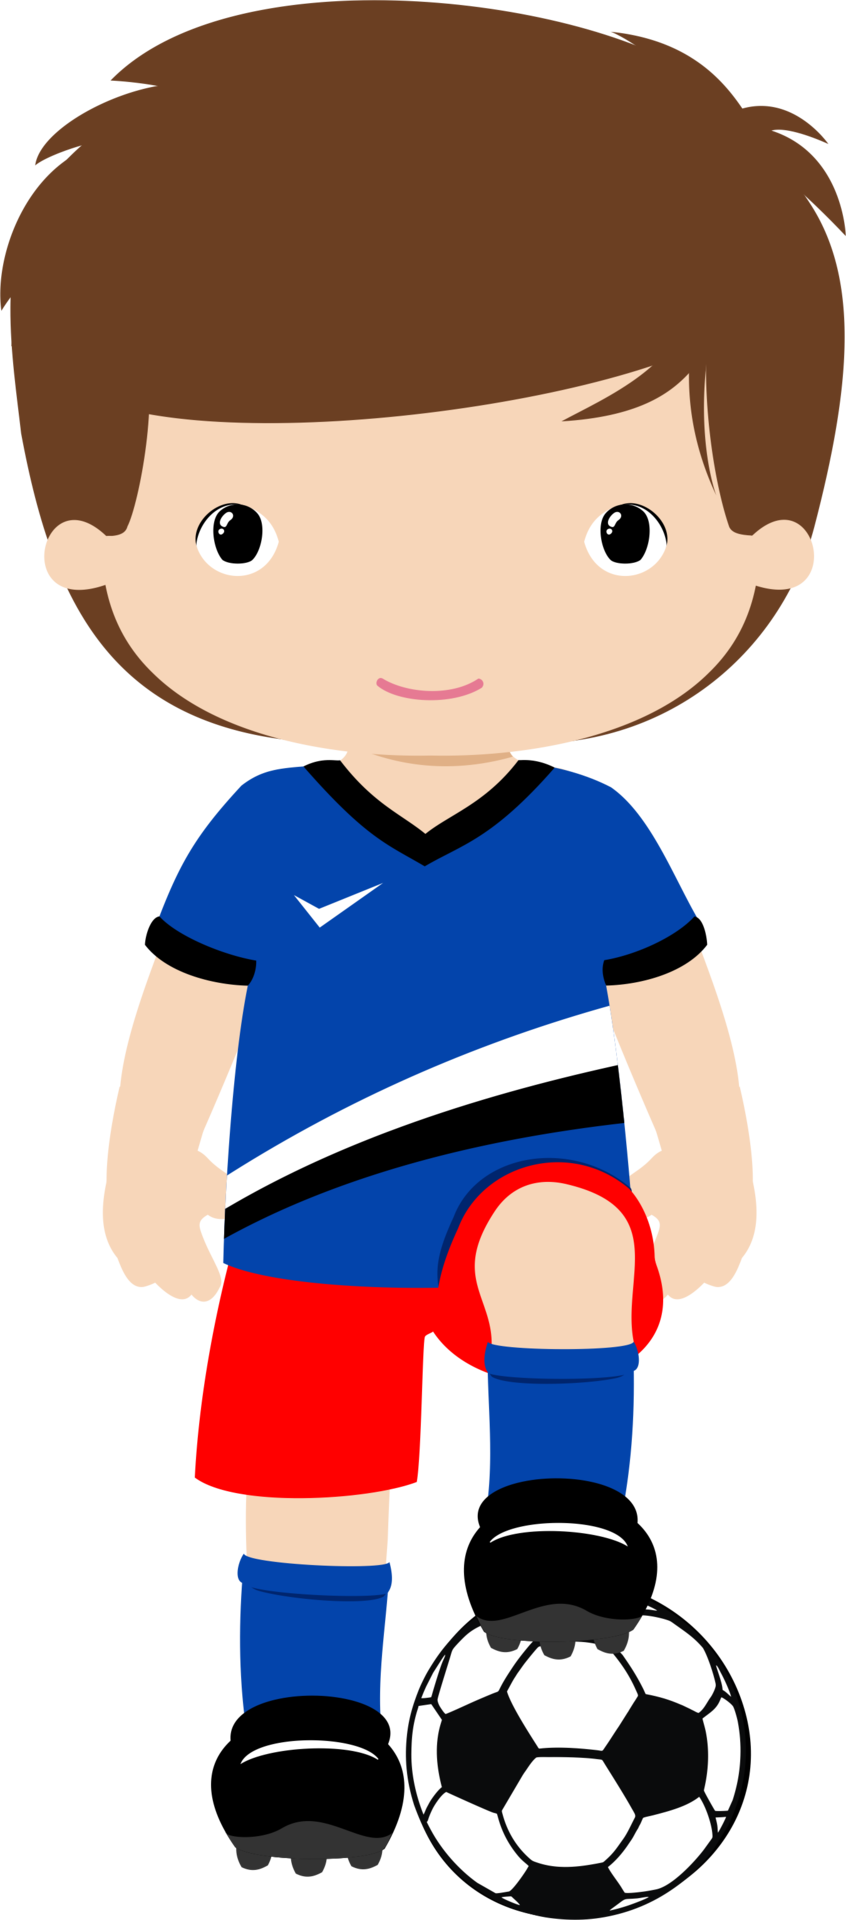 shared ver todas. Clipart door boy